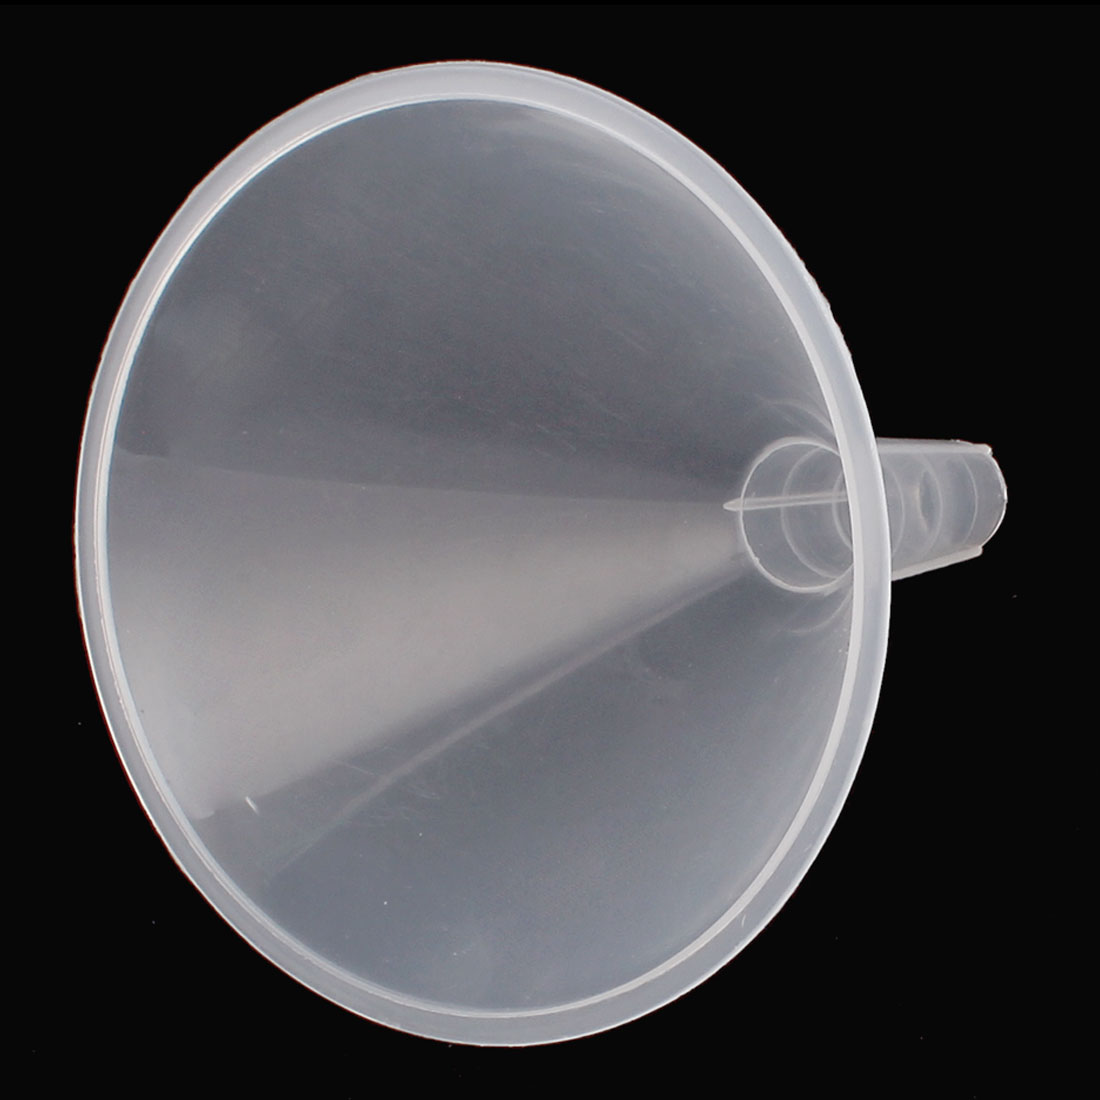 Lab Laboratory Experiment 120mm Dia Mouth Flat Tip Clear White Plastic Liquid Water Filter Funnel